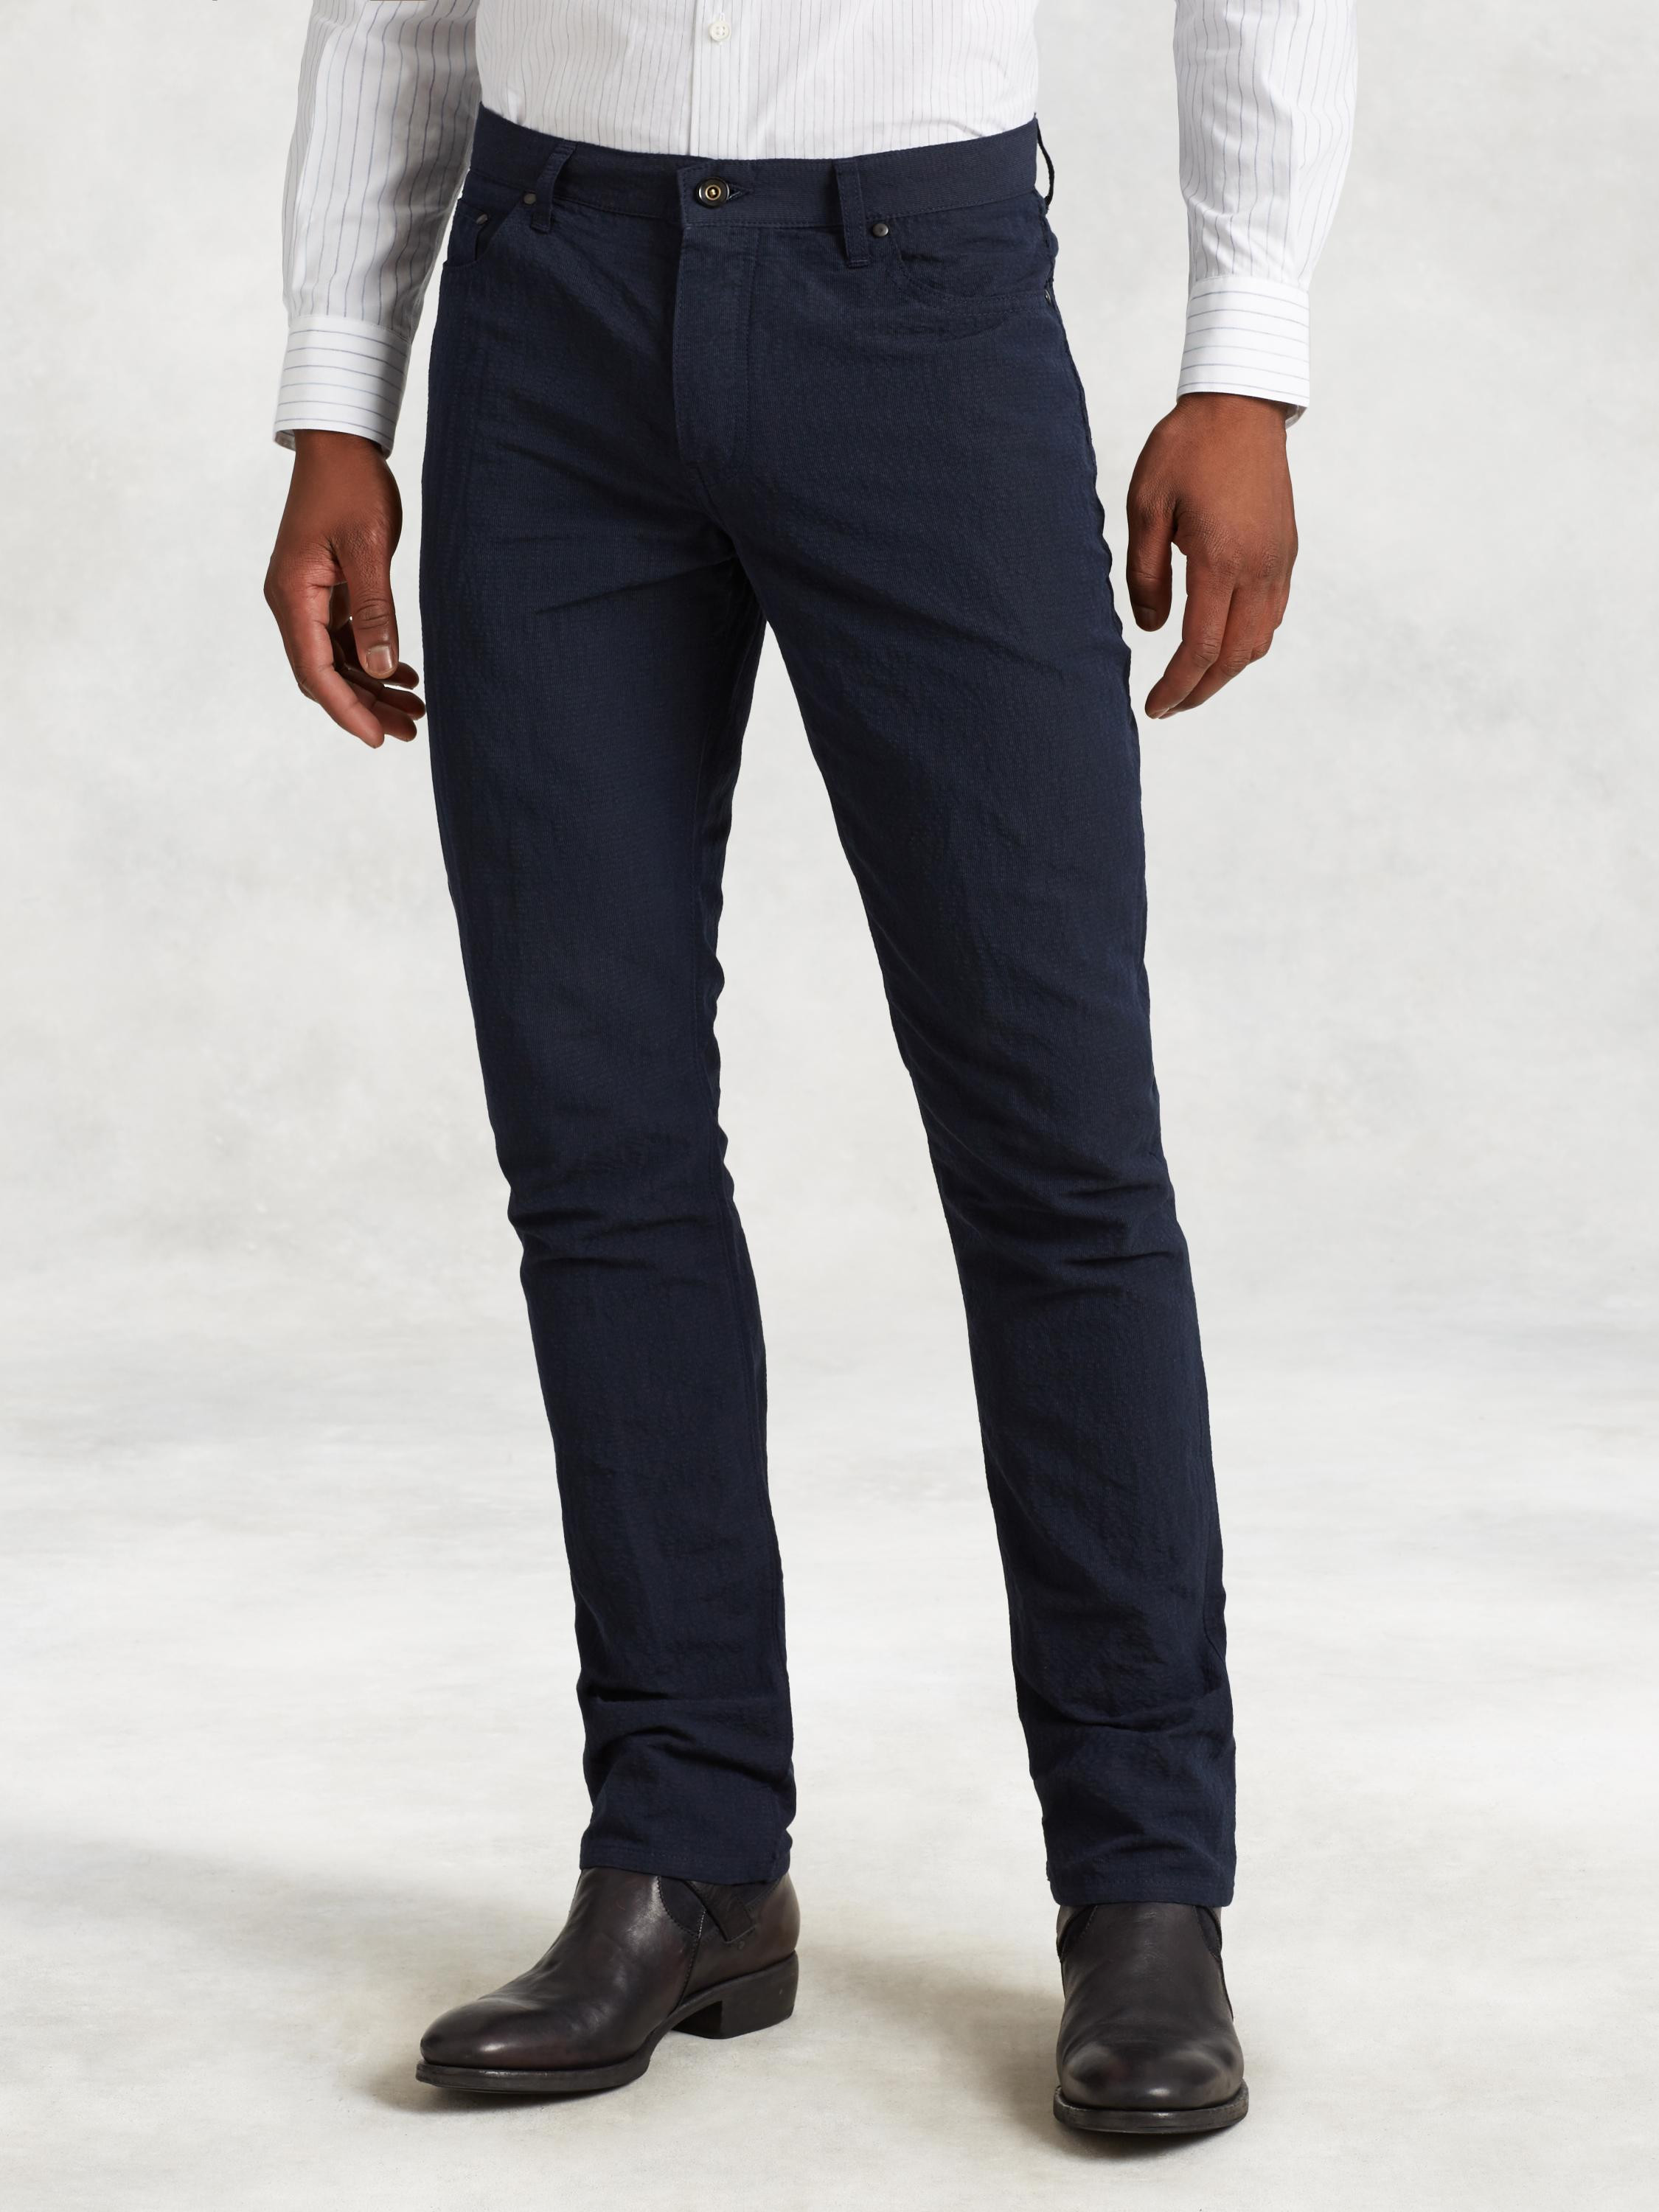 Cotton Linen Woodward Jean